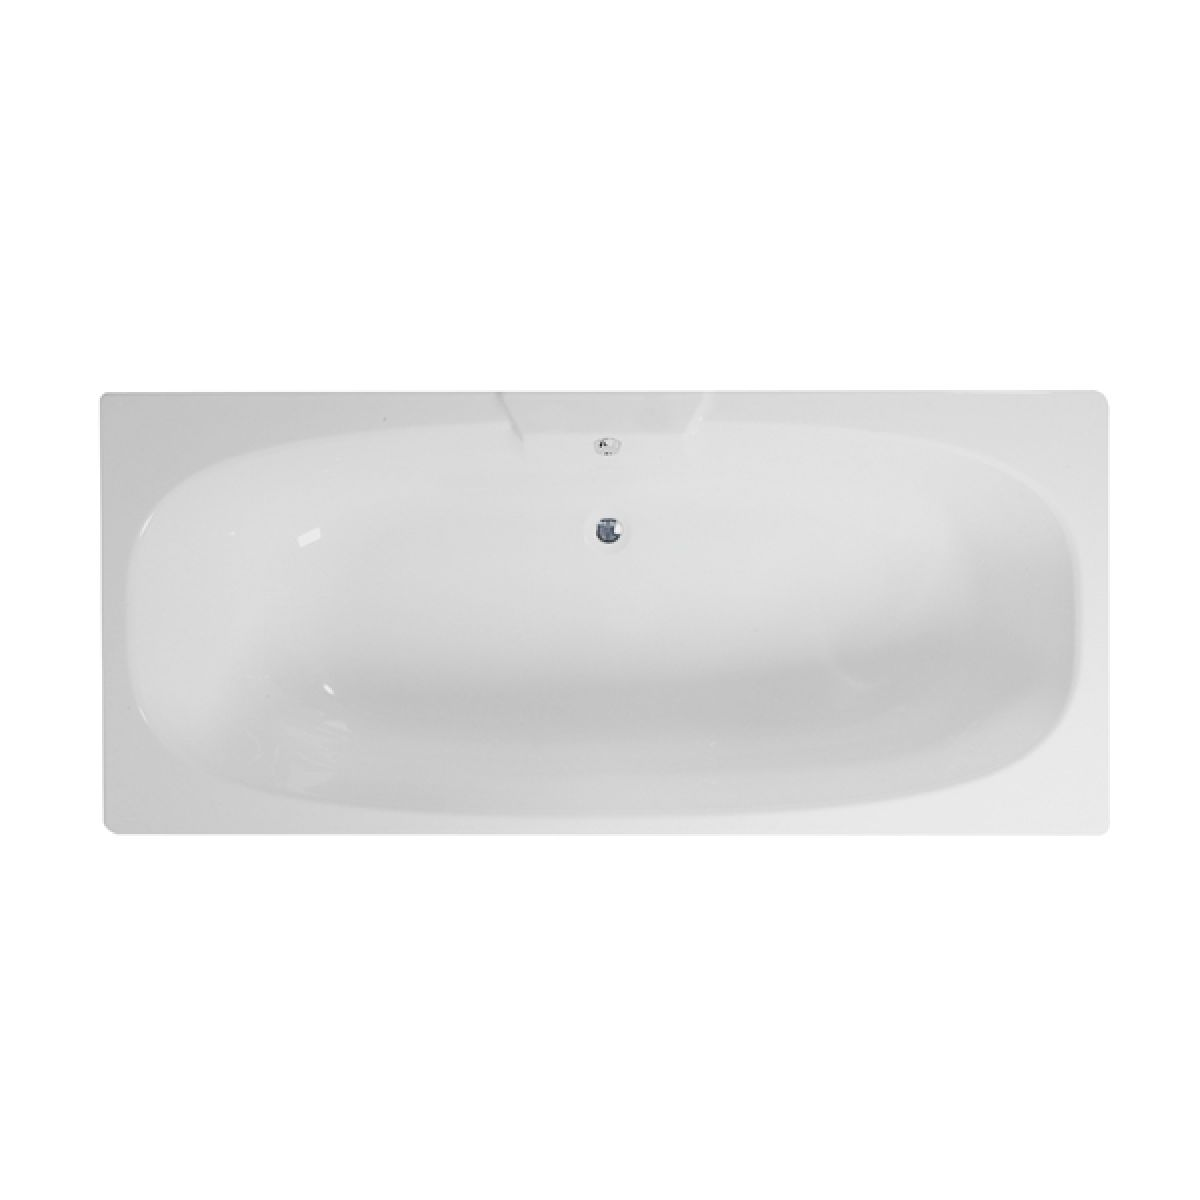 Frontline Altair Luxury Double Ended Bath